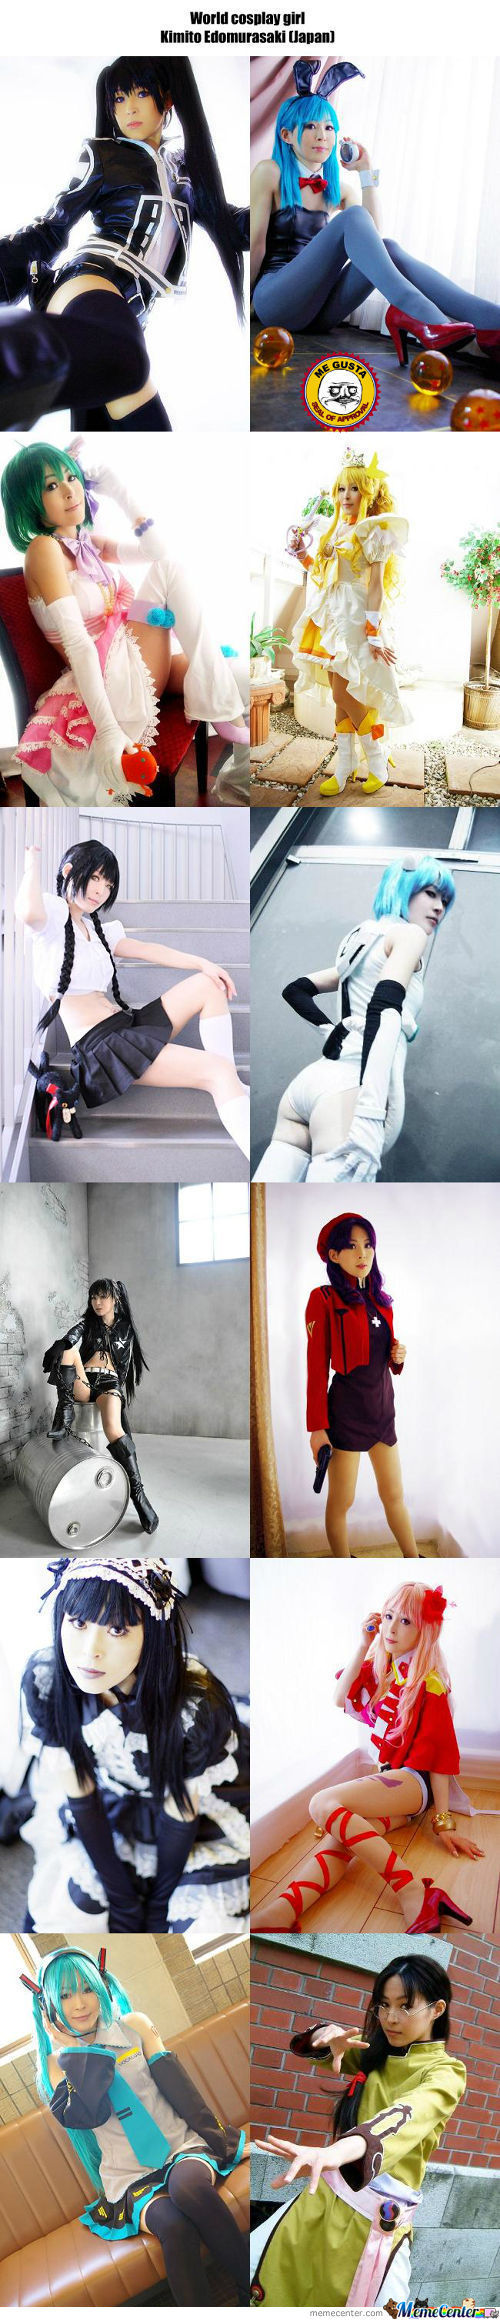 Cosplay Girl 19 : Kimito Edomurasaki (Japan)